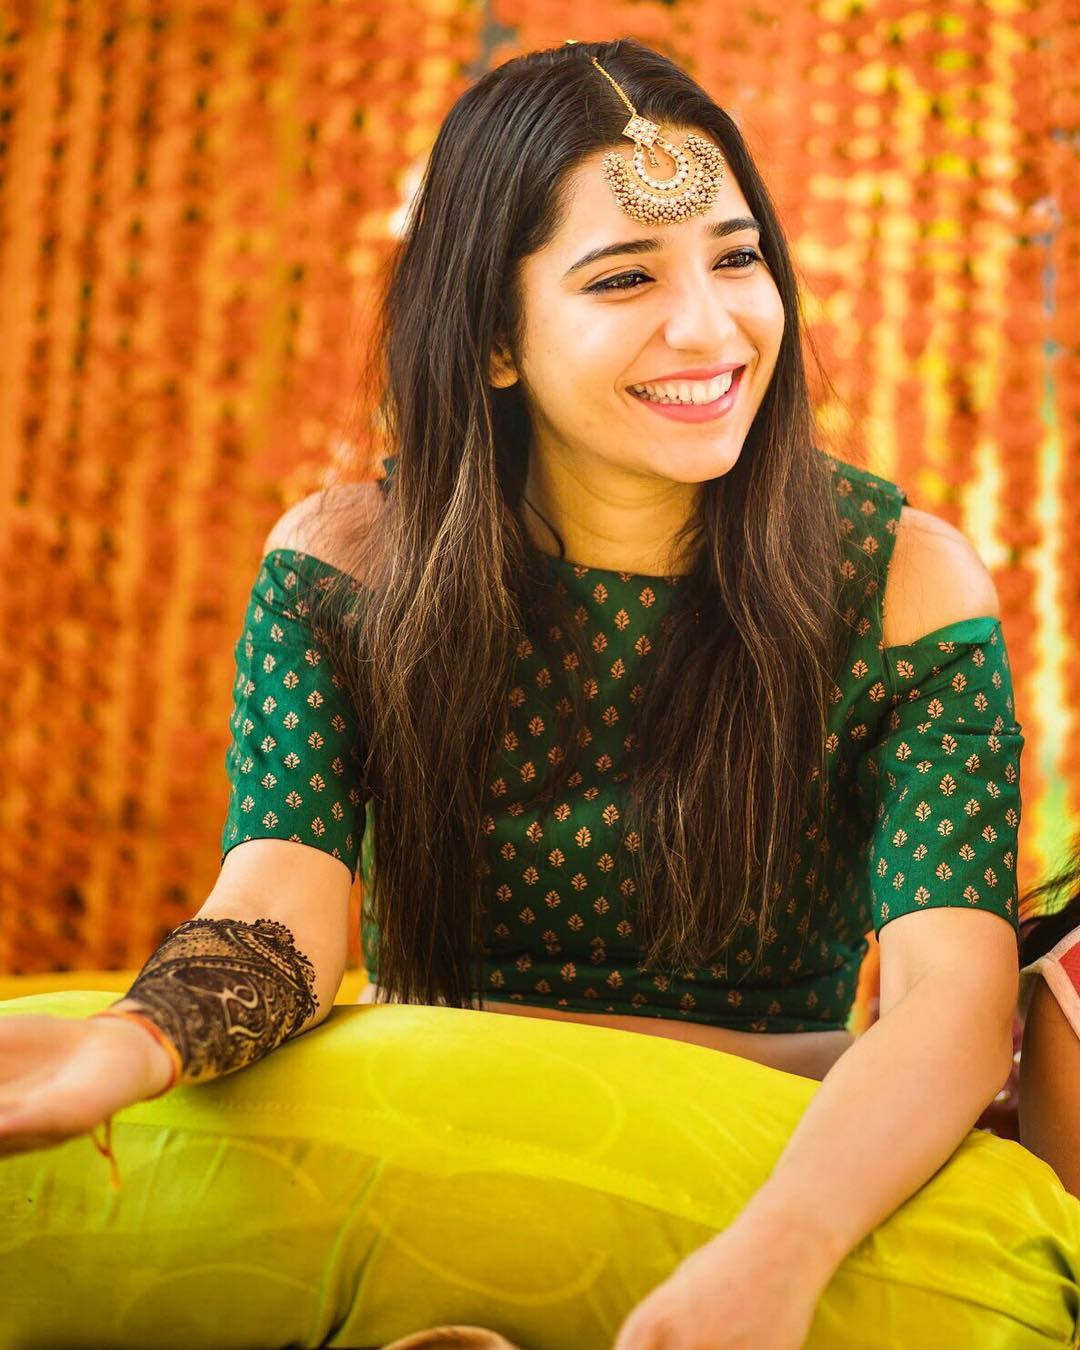 mehendi outfit ideas, offbeat mehendi outfits